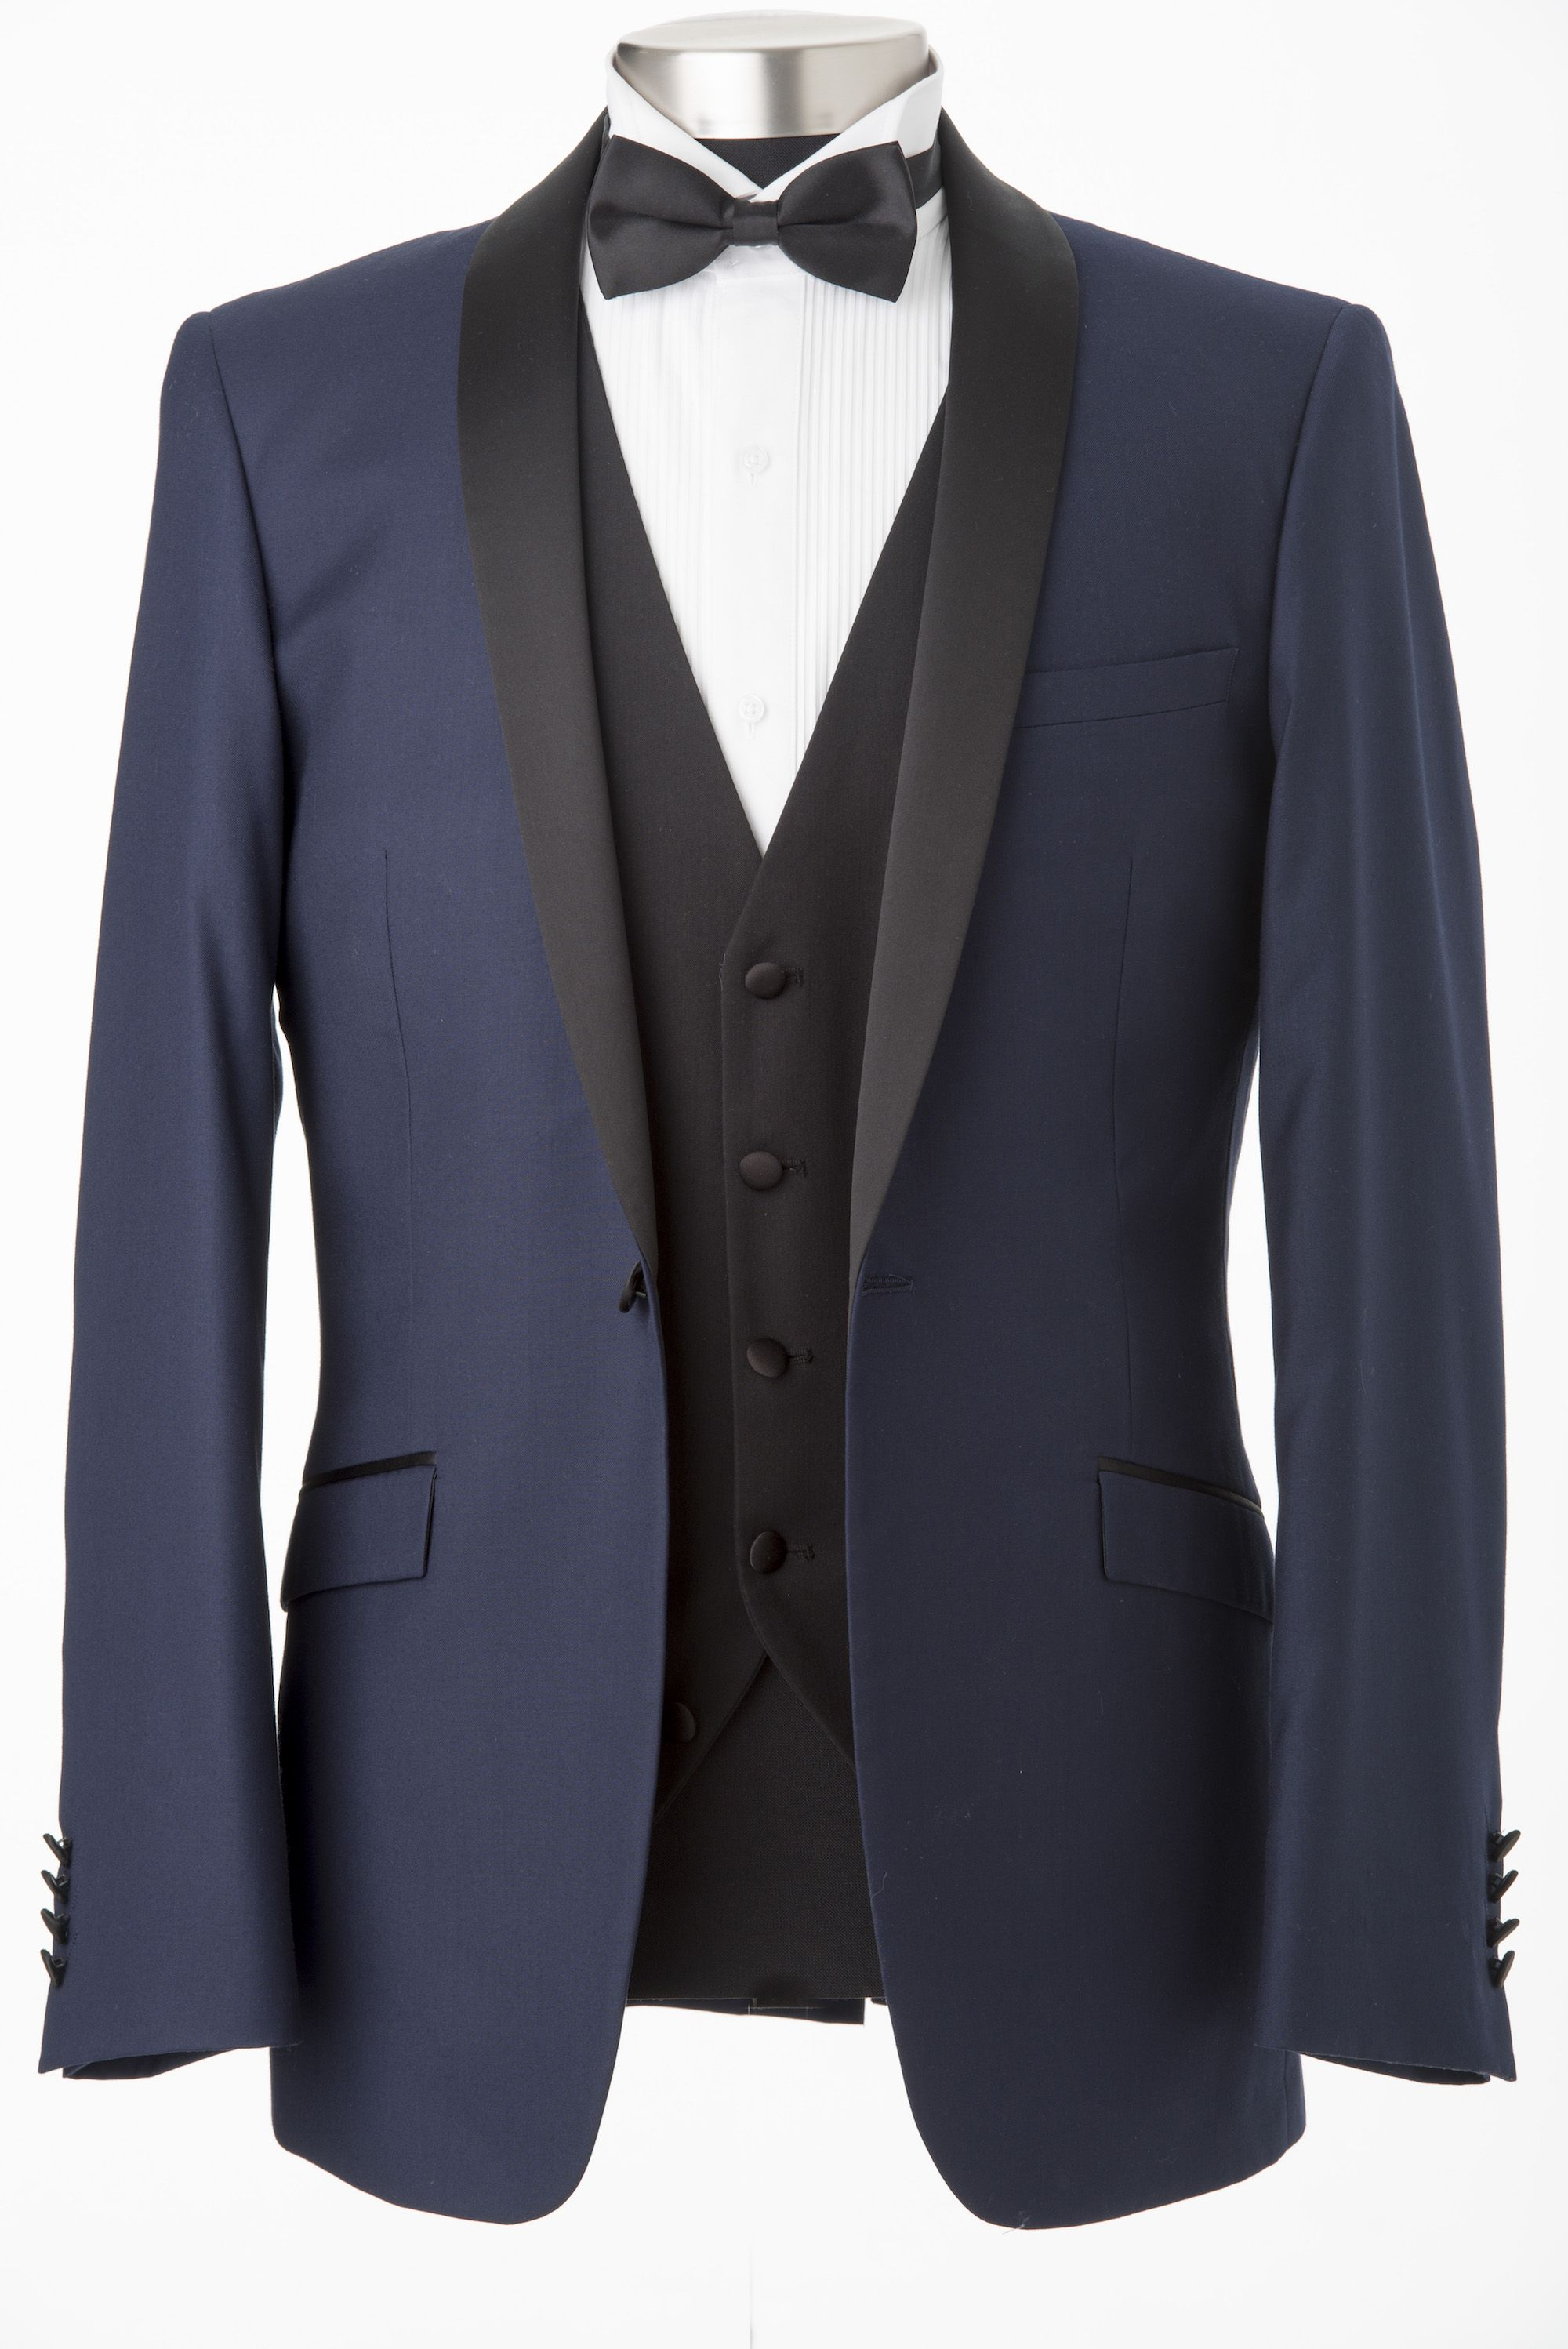 Buy Blue Bond Suits in Sydney